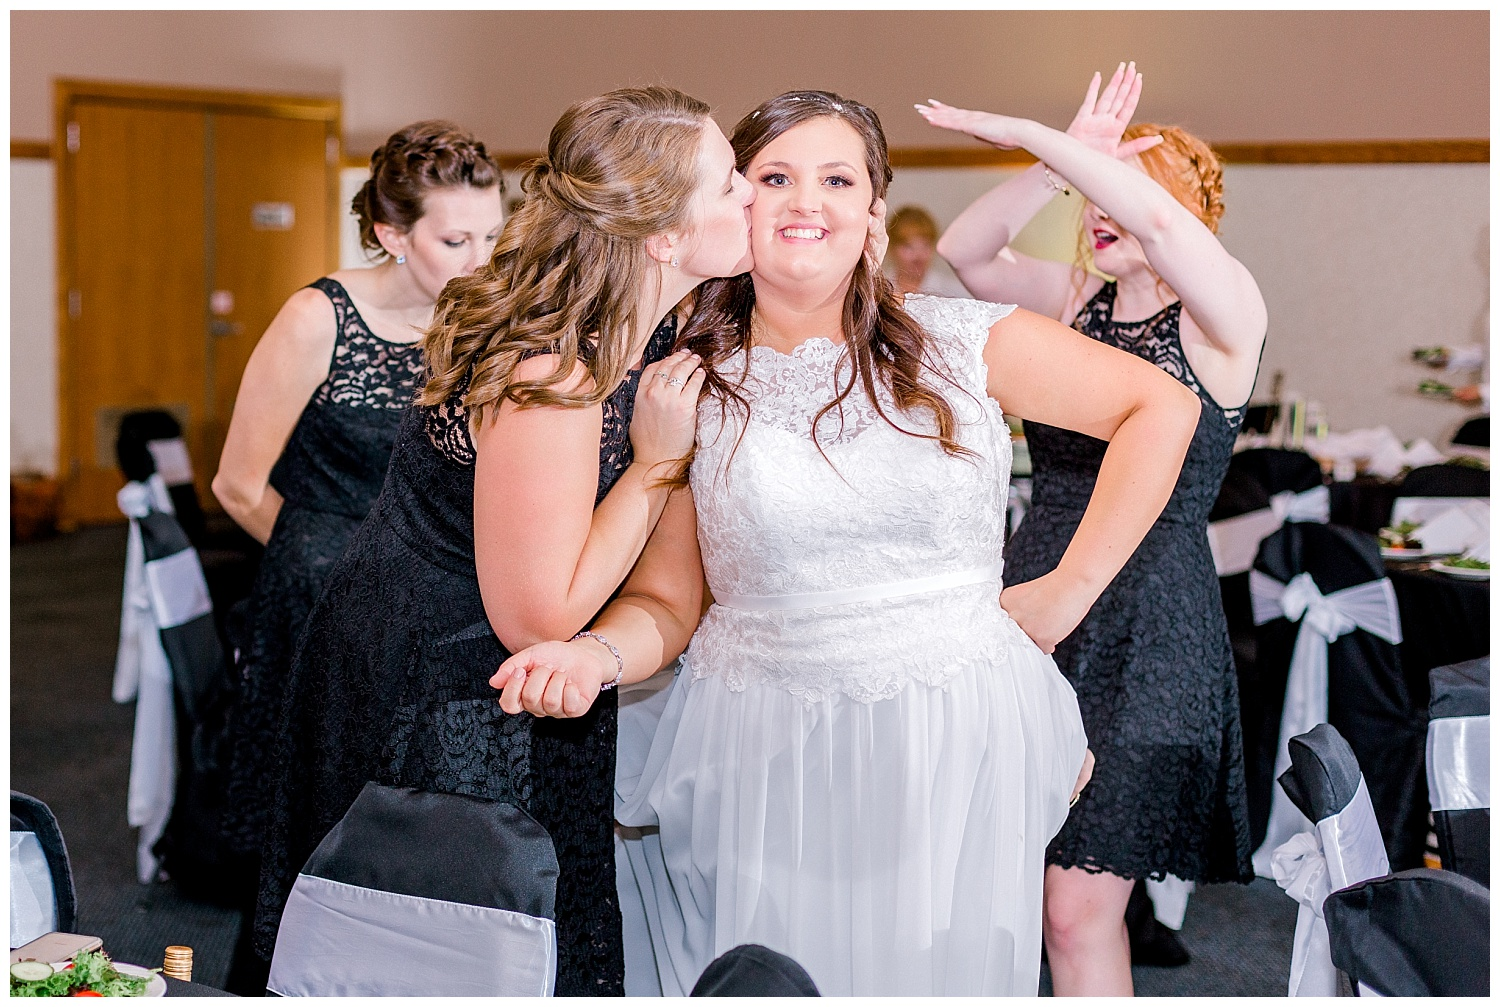 A Black and Gold Catholic Church Wedding in Wilkes Barre Pennsylvania by lehigh valley pennsylvania based wedding and lifestyle photographer Jeannie Lytle of Lytle Photography   Company (36).jpg